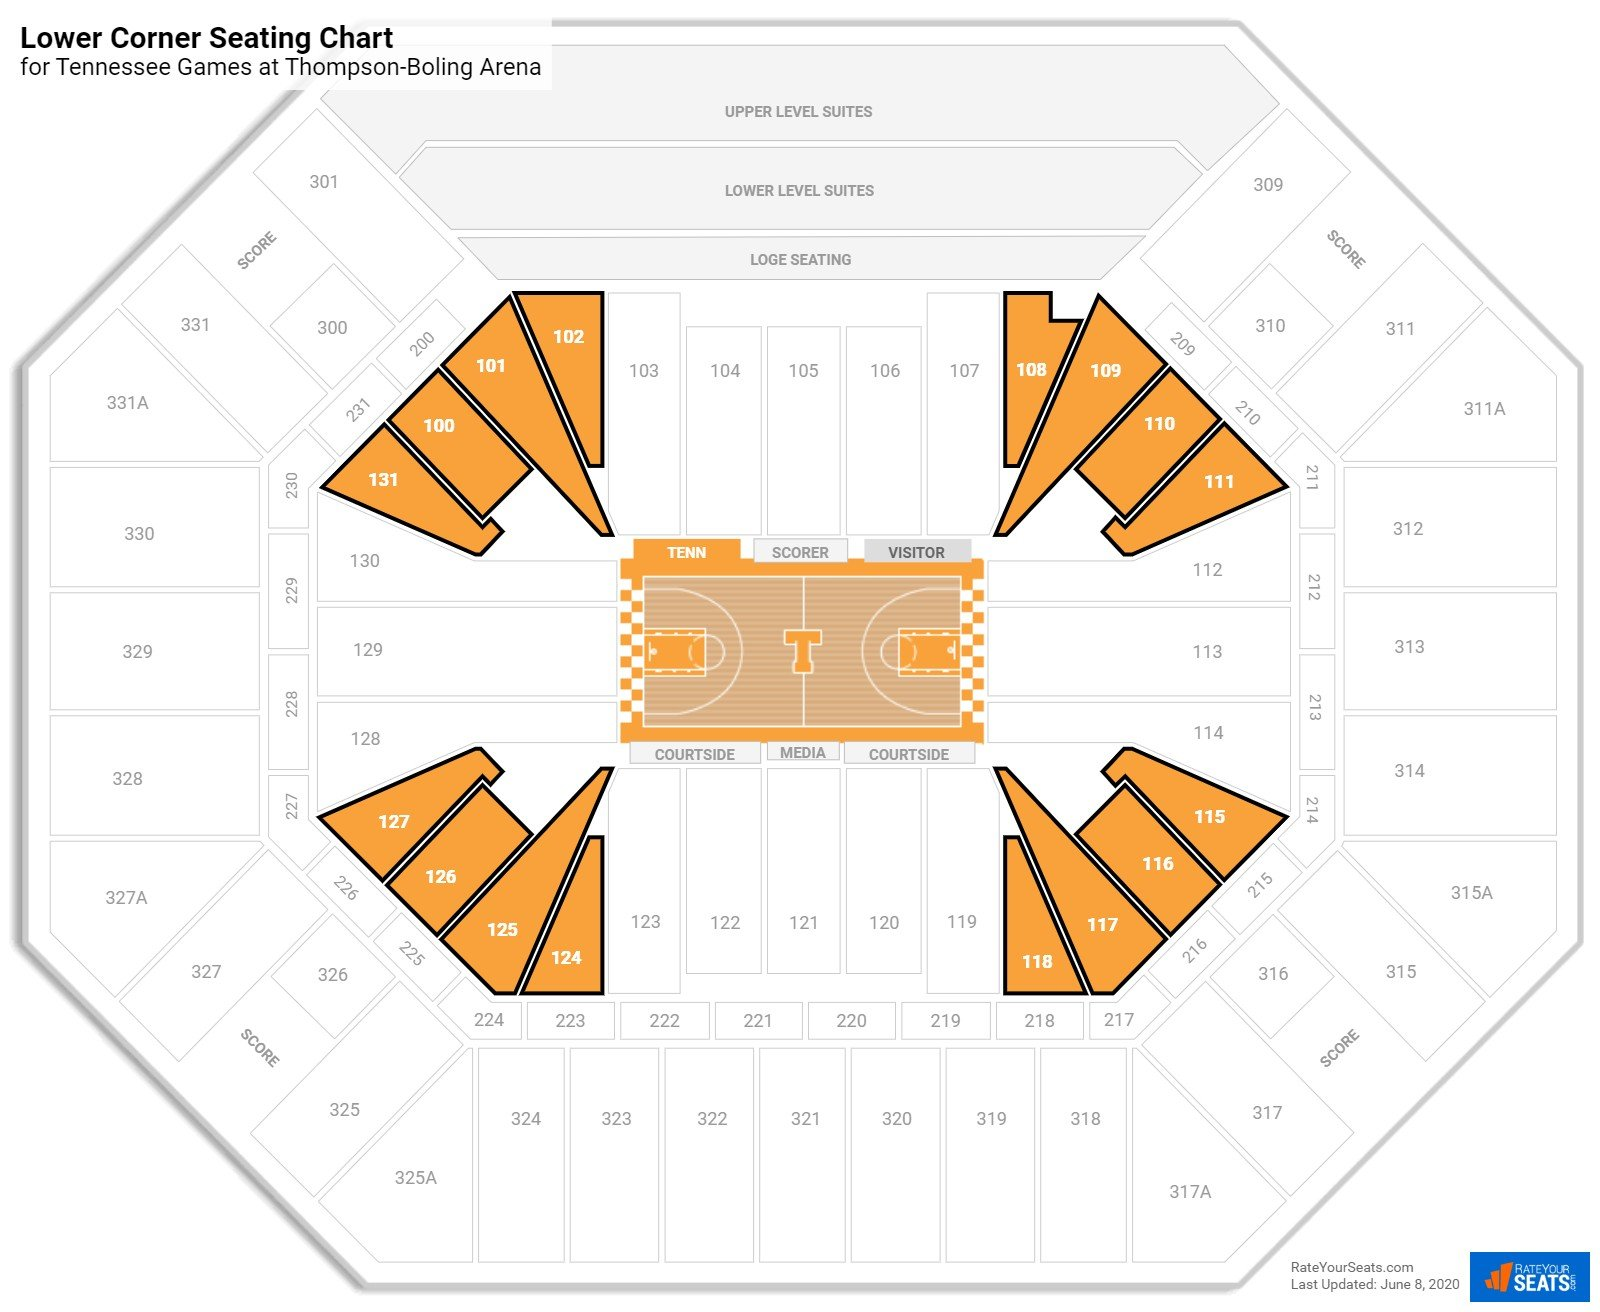 Thompson Boling Arena Lower Corner Seating Chart